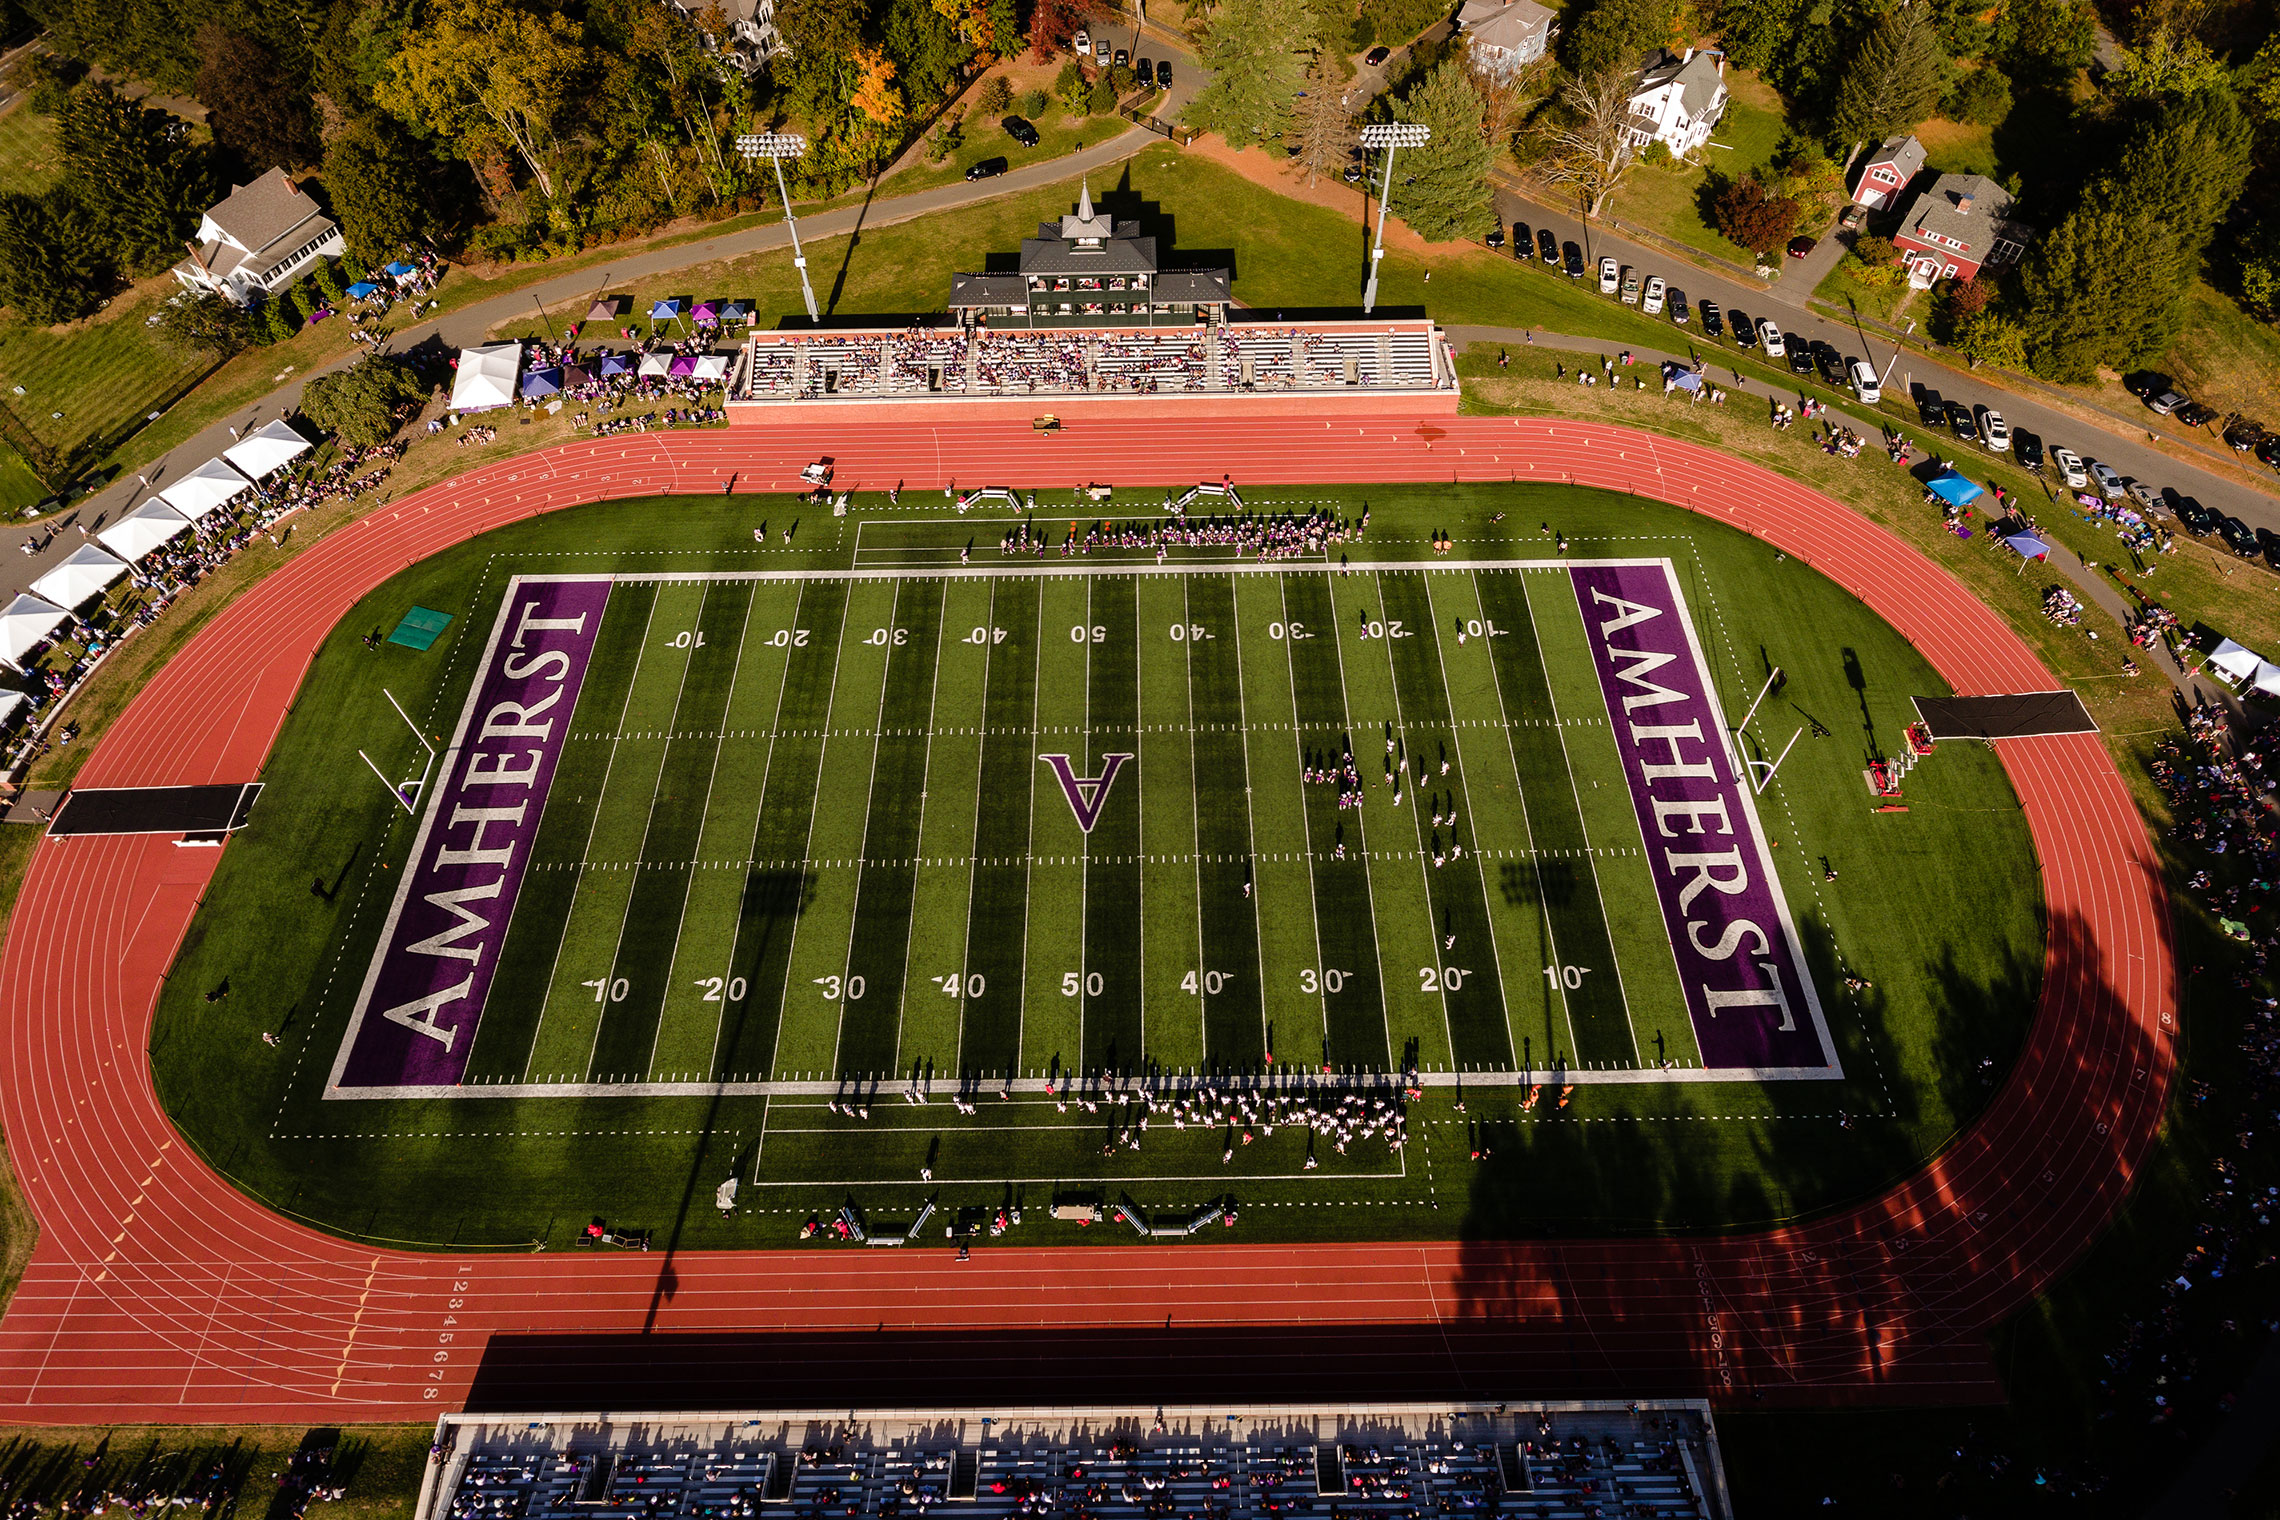 An aerial view of Pratt Field, Amherst College.